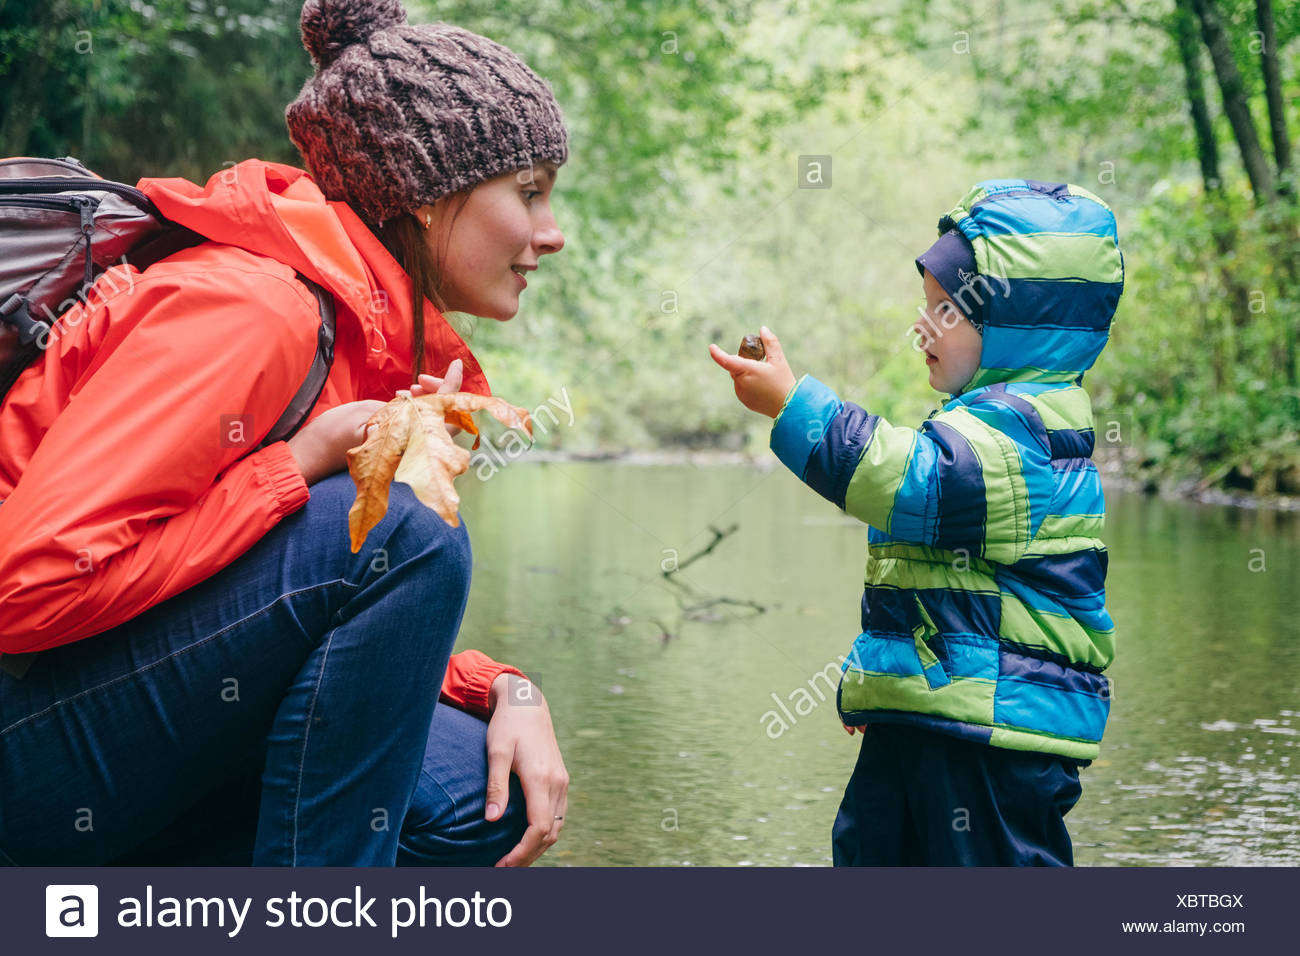 Mother and son exploring stream in forest, Vancouver, British Columbia, Canada - Stock Image